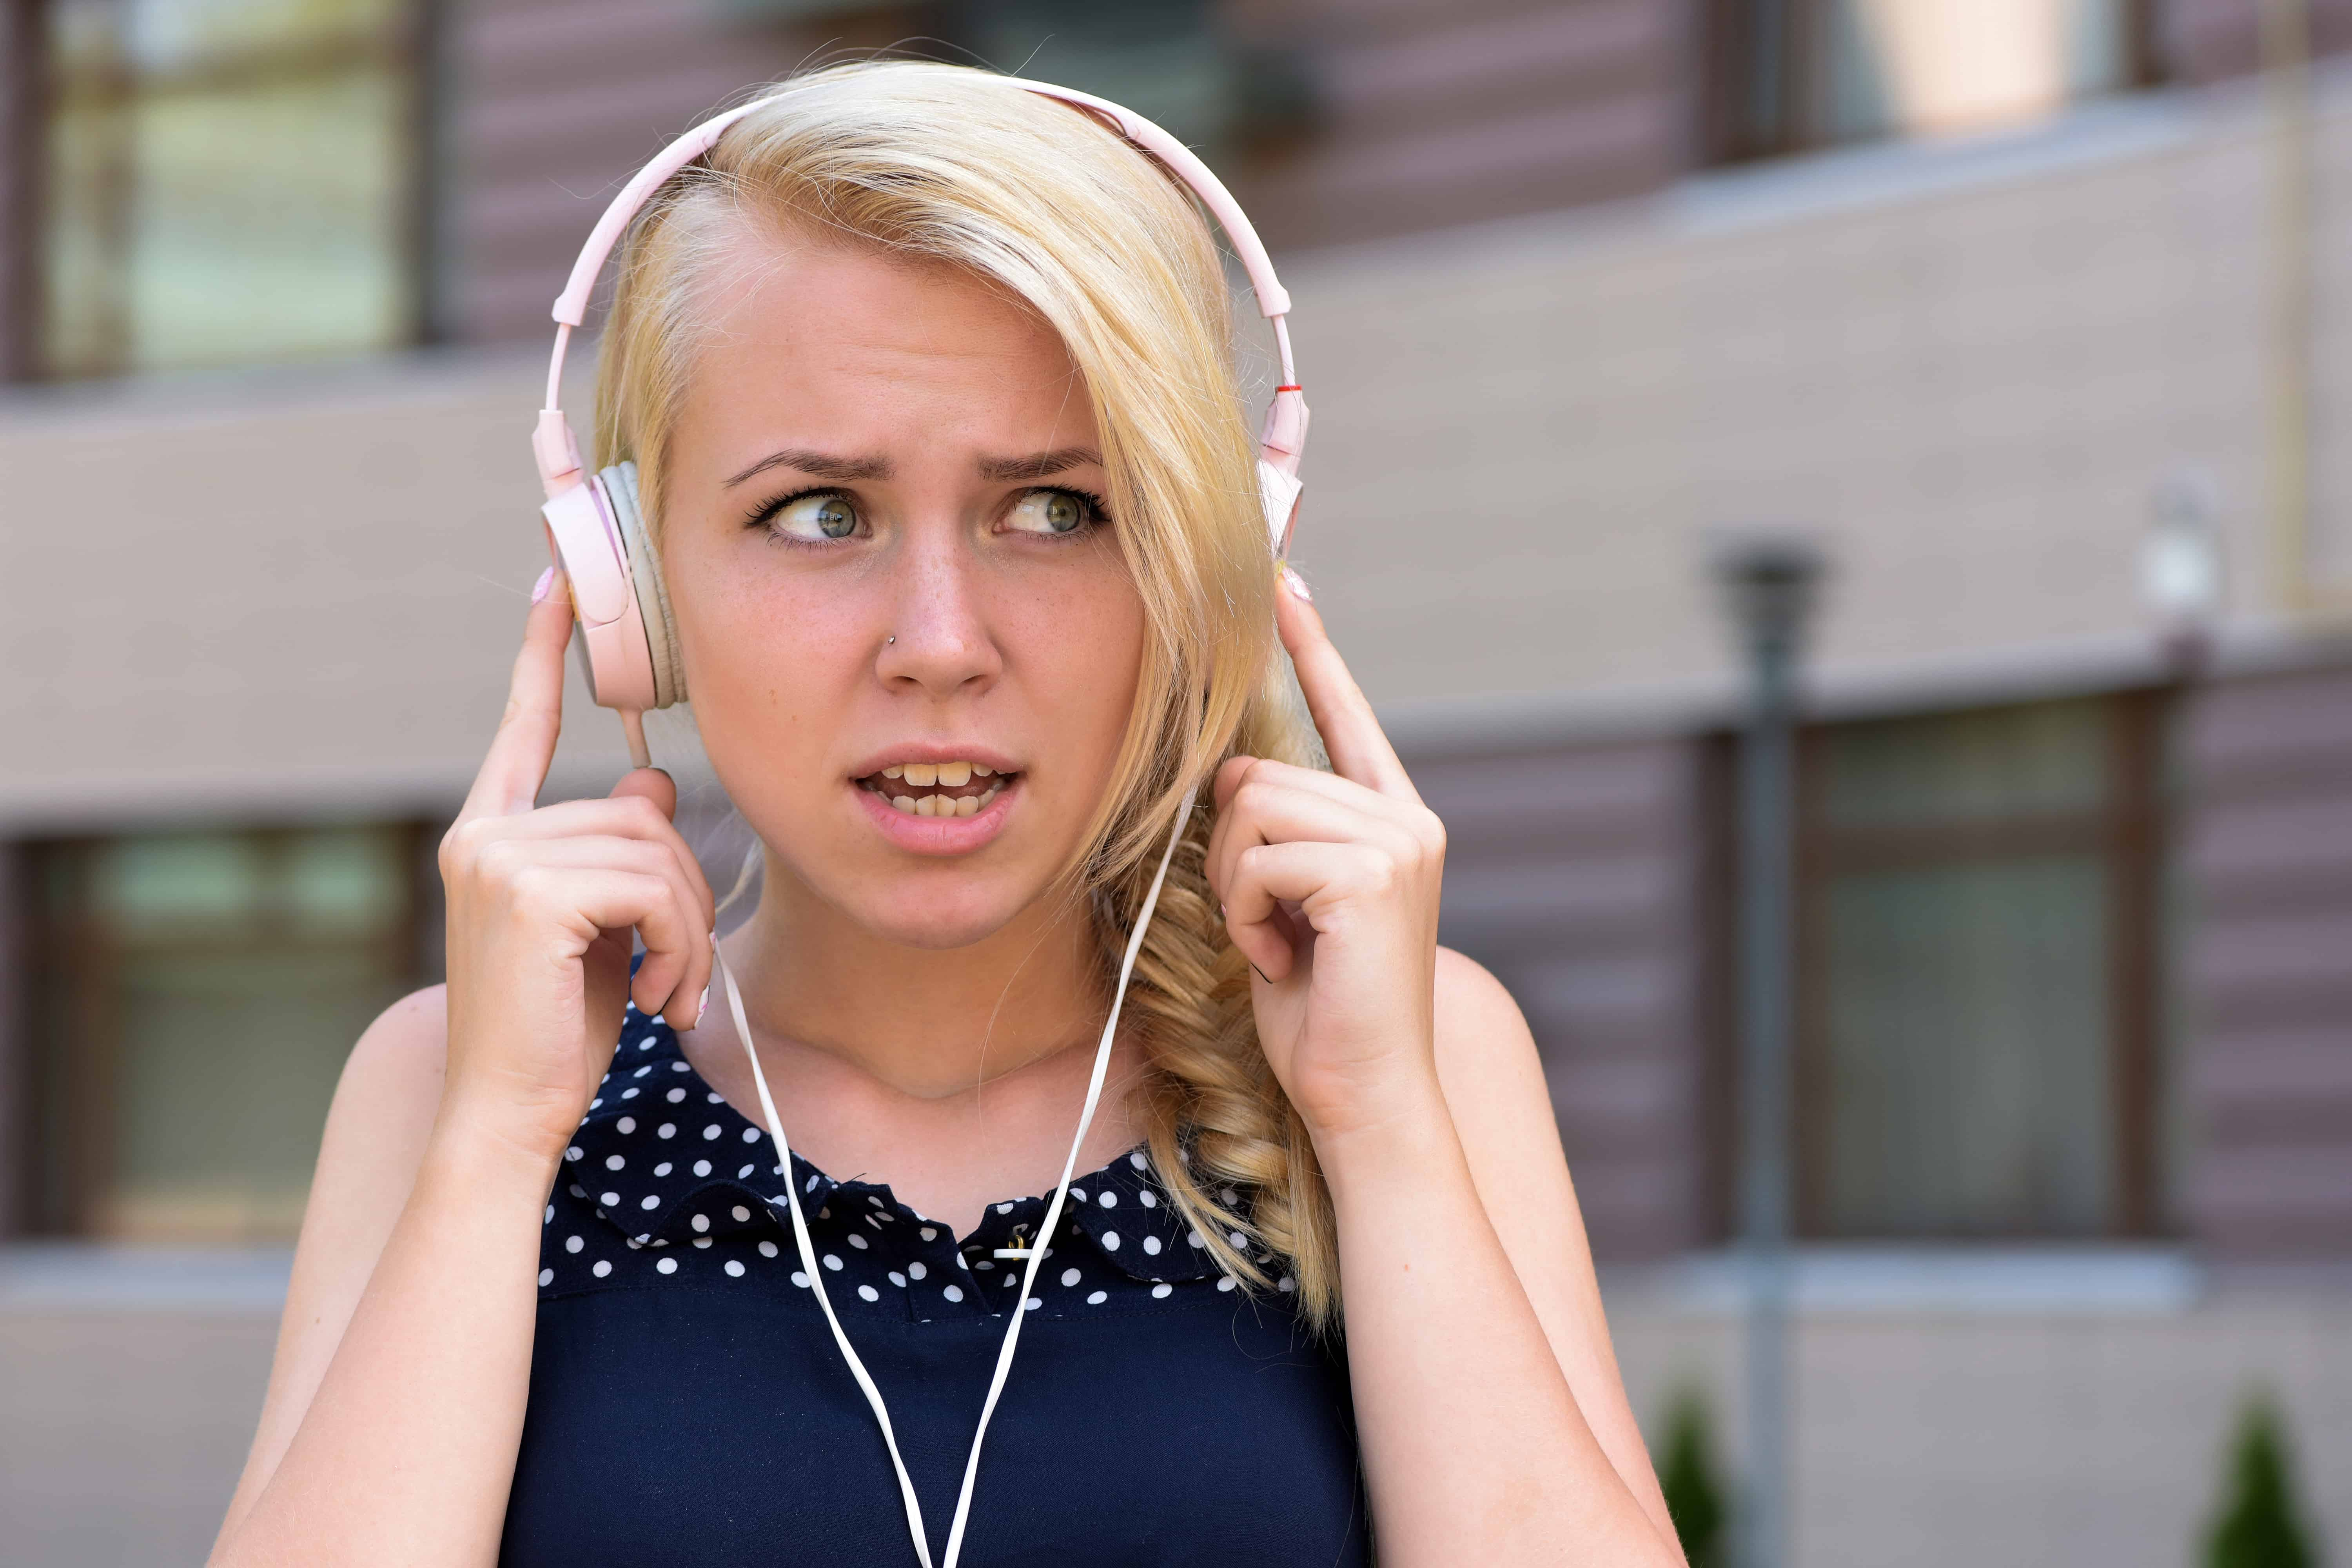 A young female wearing headphones that don't appear to be working